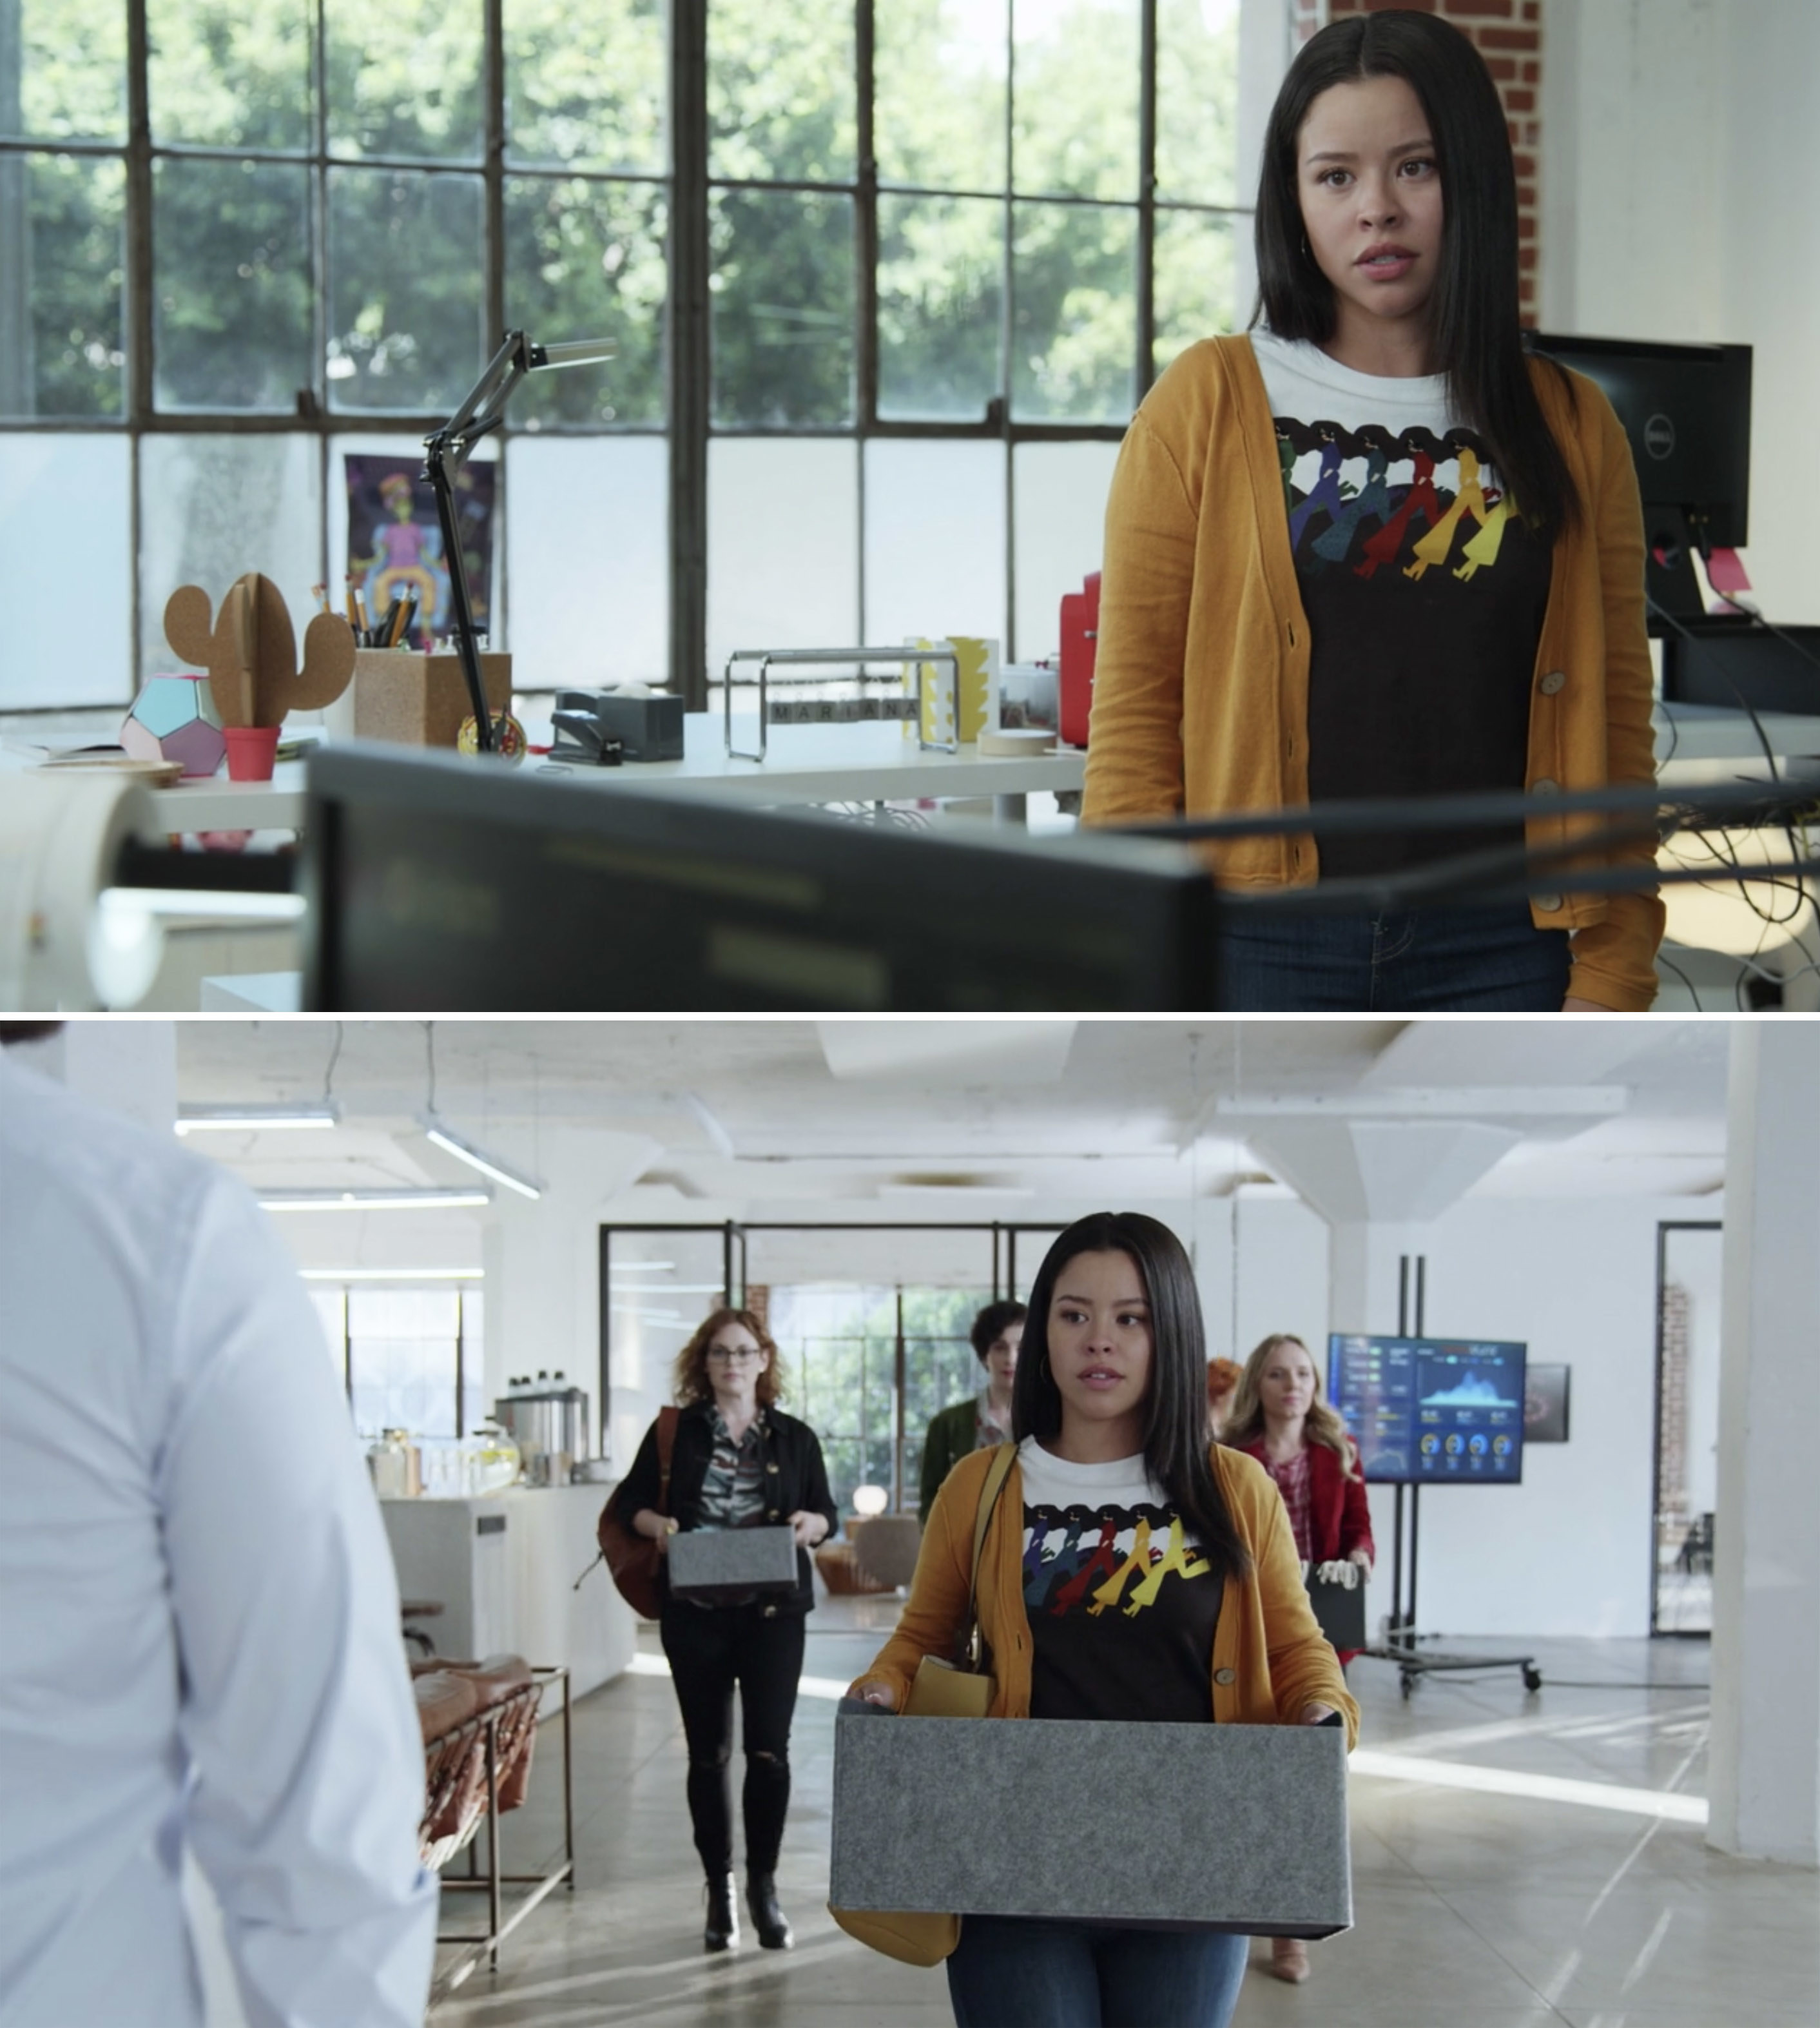 Mariana walking out of Speckulate with her team